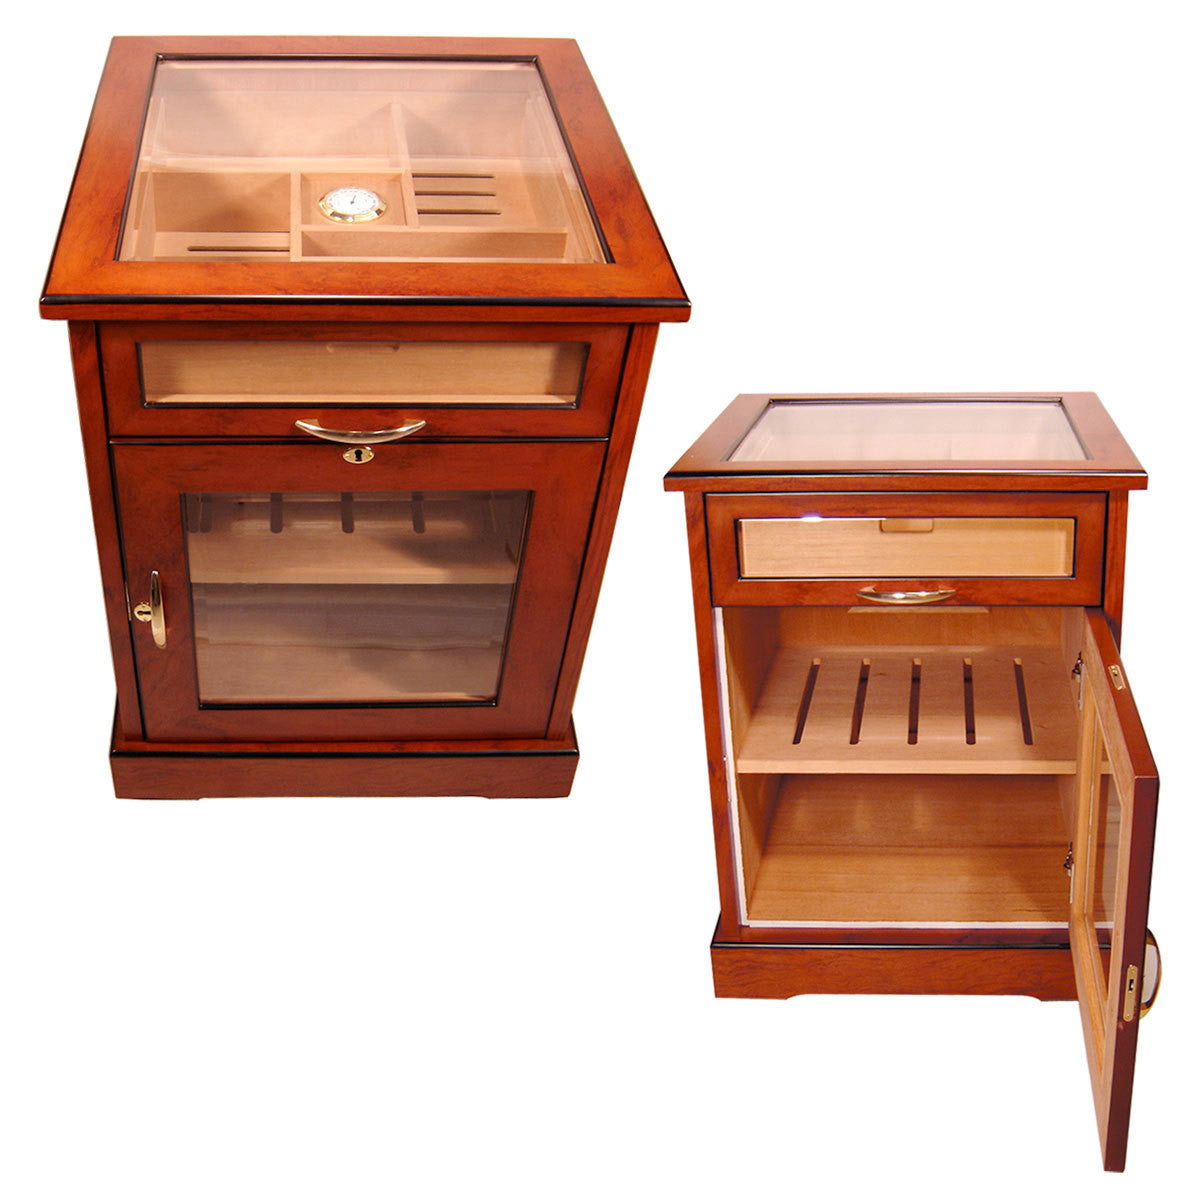 game humidor mate bar desktop lowe canada cabinets accents humidors s cm room decor cigar cabinet furniture